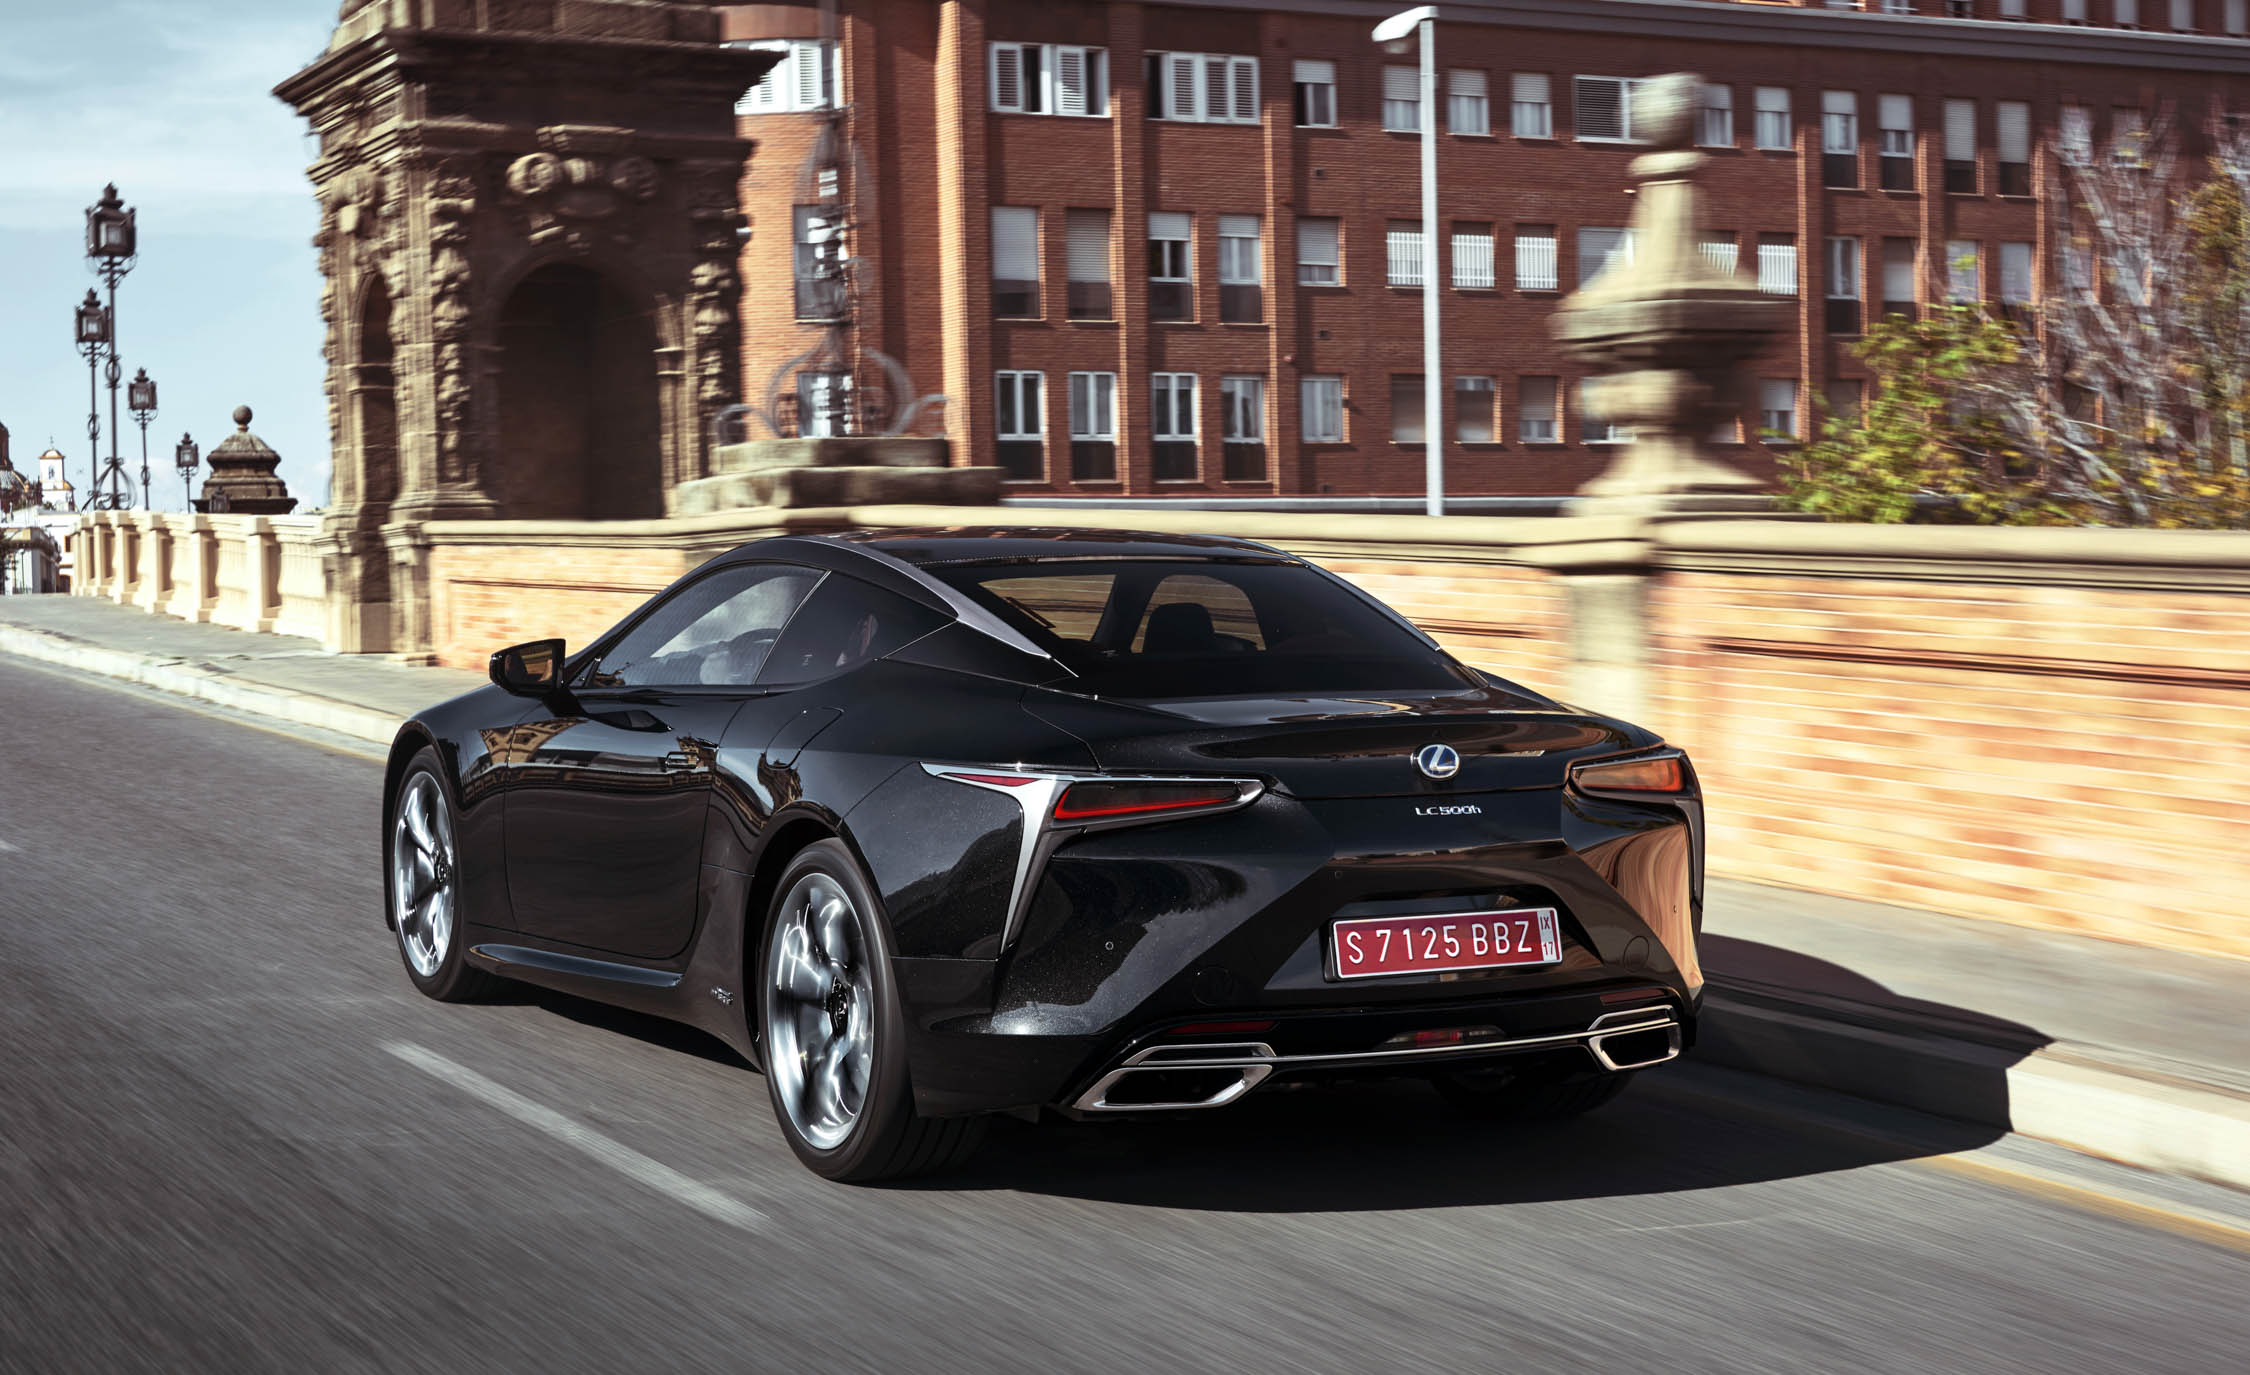 2018 Lexus Lc 500h Black Rear And Side View (View 47 of 84)